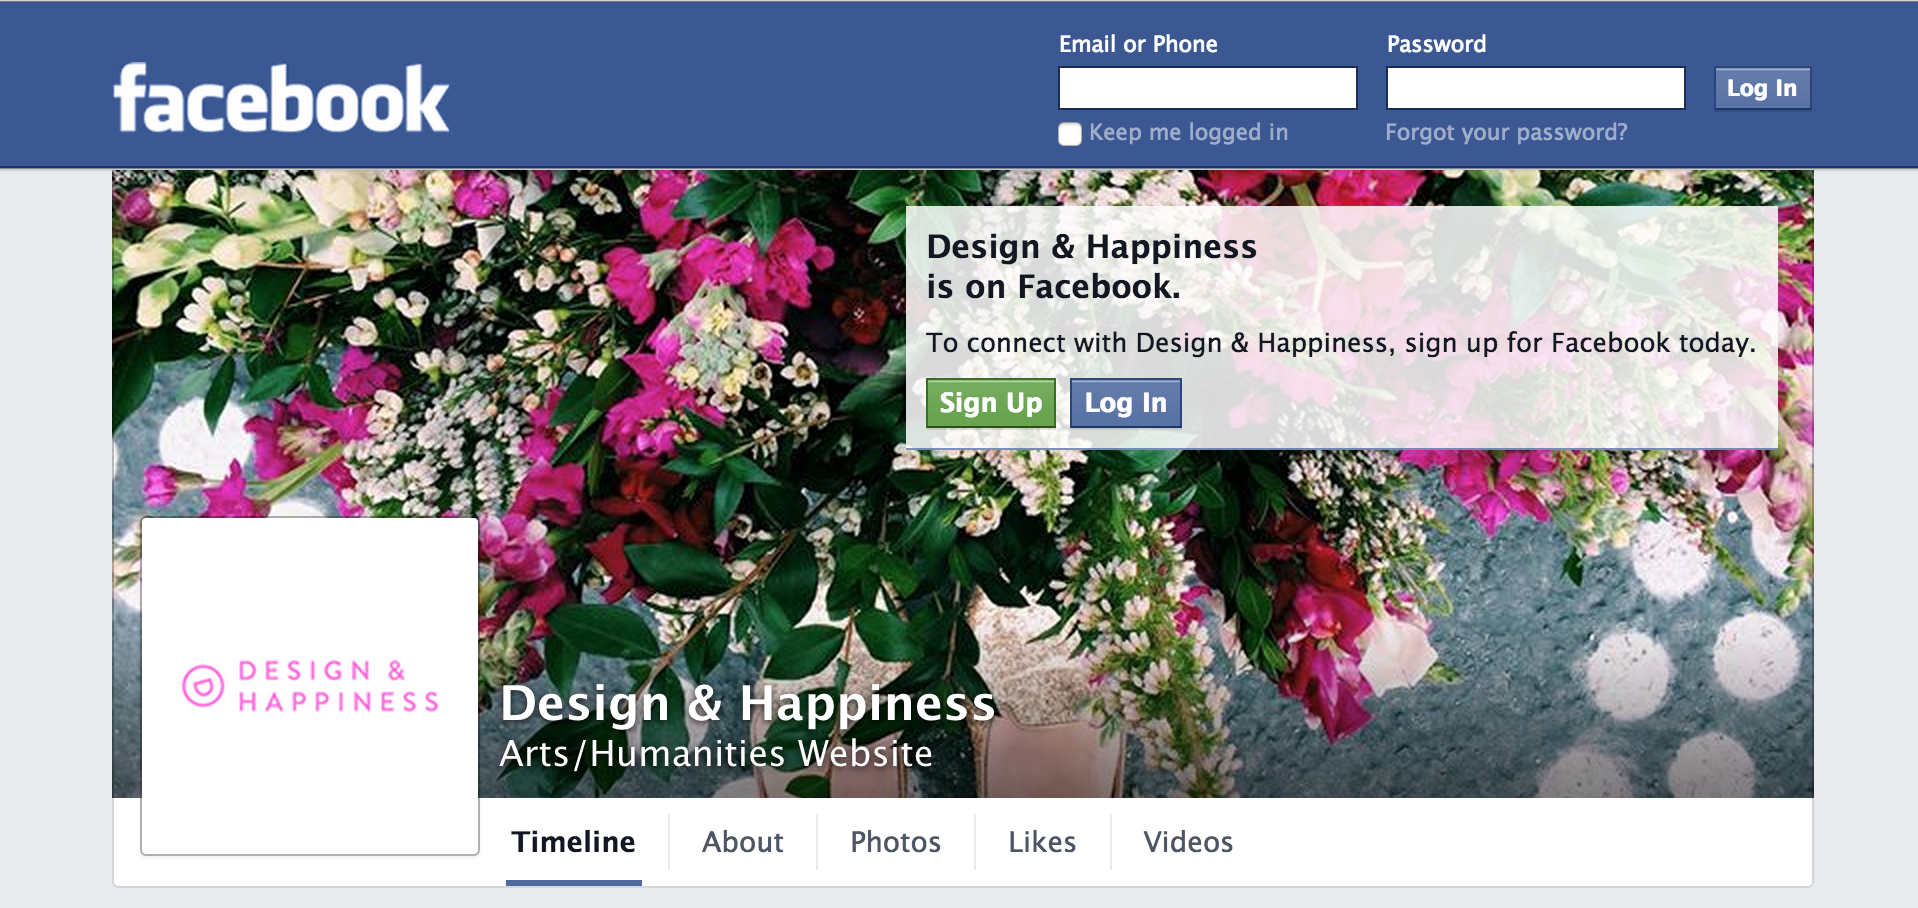 Design & Happiness' Facebook Page